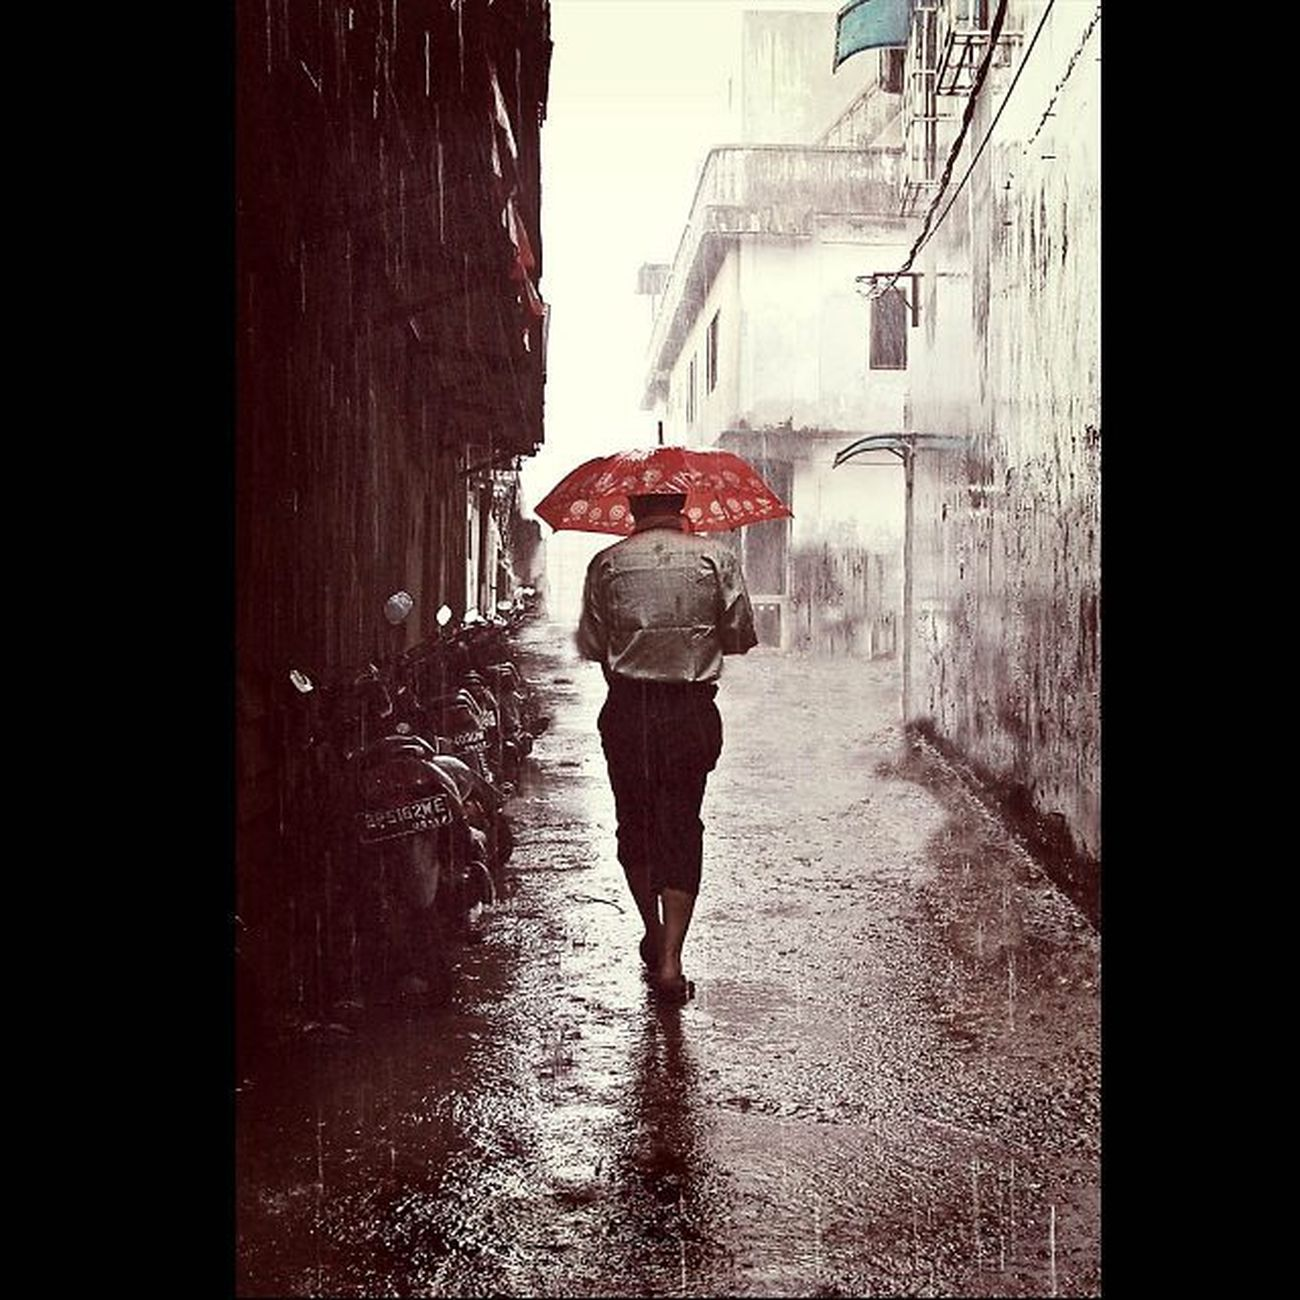 """The Rainy Day"".......@streetlife_award StreetLife_Award SreetLife_VM Viewerscorner Godiscover People Portraiturephotography Wonderfullkepri Wonderfulindonesia Pewartafotoindonesia Indonesiajuara Bestpartofindonesia IndonesiaOnly Indonesia_photography Photooftheday Thephotosociety Streetphotography Streetphotographer Mirrorless Mirrorlesscamera CSC OlympusPEN EPL1 Getolympus"